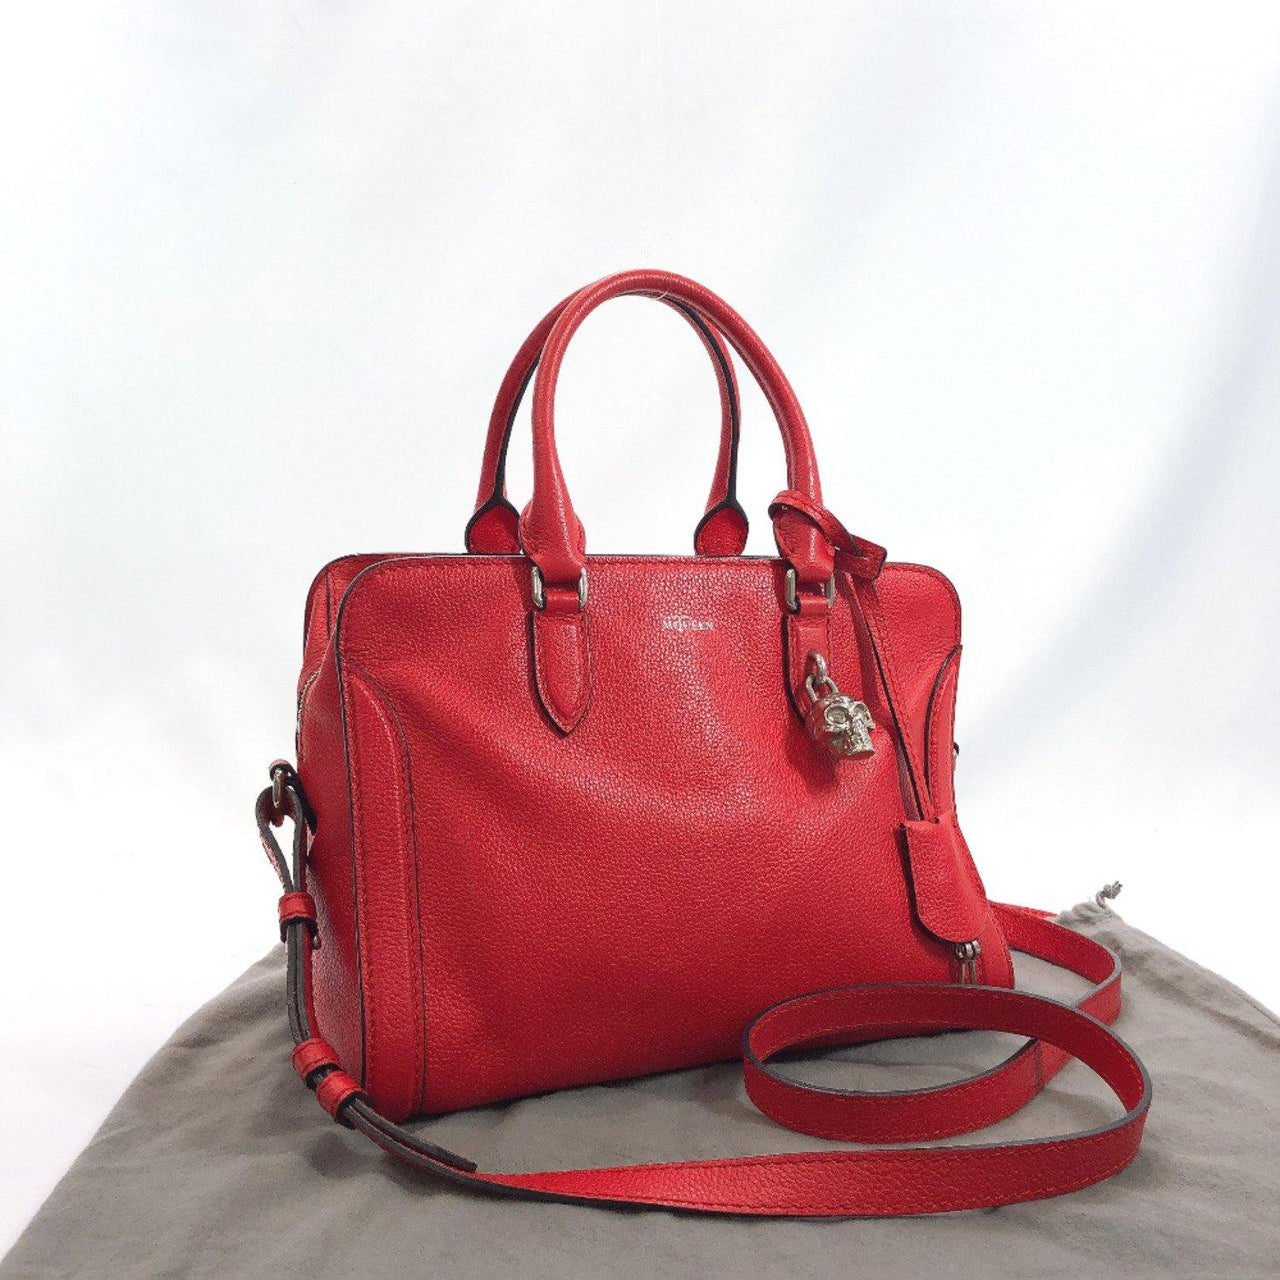 Alexander McQueen Handbag 375306BPT0N6605 2way Skull type with padlock leather Red SilverHardware Women Used - JP-BRANDS.com